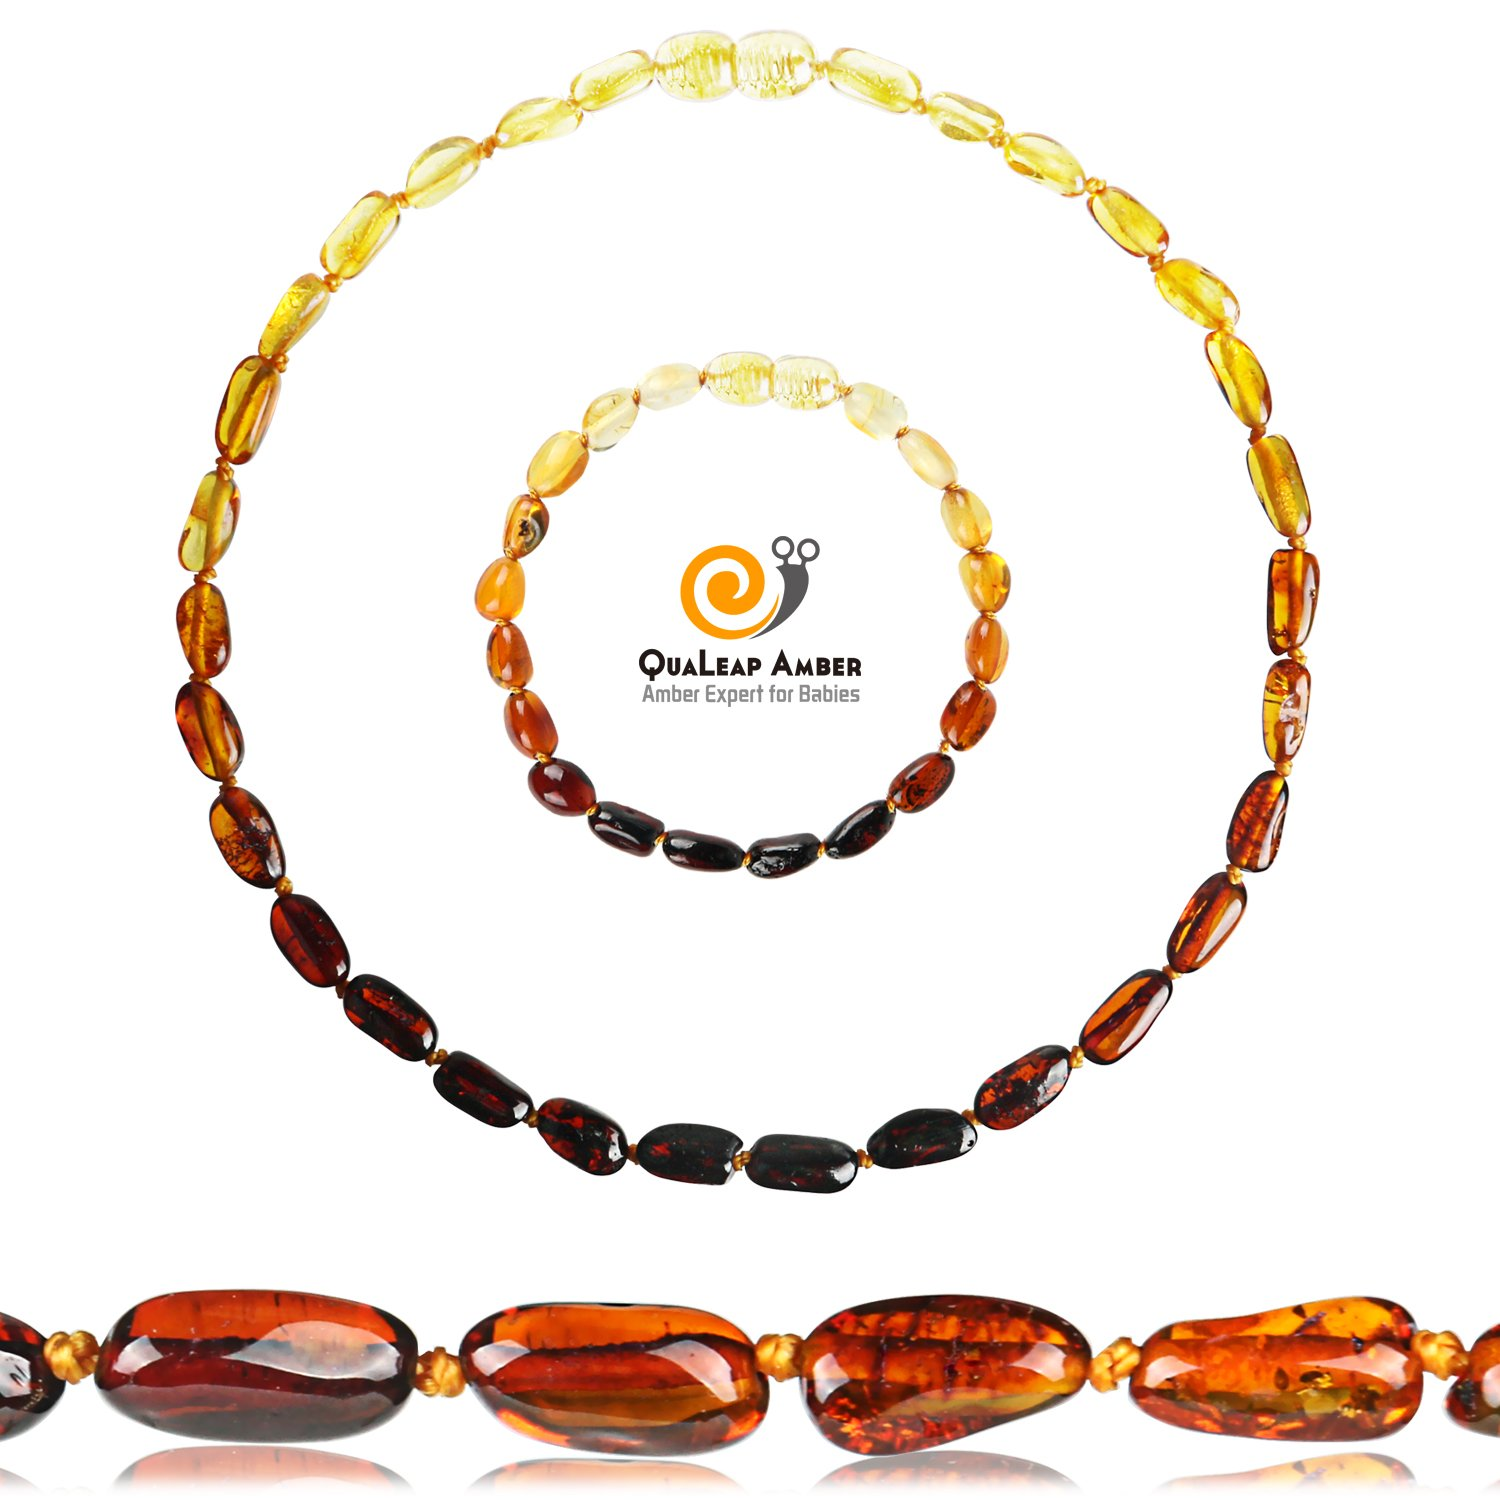 Baltic Amber Teething Necklace + Amber Teething Bracelet Set for Baby, 100% Authentic Baltic Amber Necklace and Amber Teething Anklet for Infant & Toddler (Unisex - Rainbow - 12.5 Inches / 5.5 Inches)